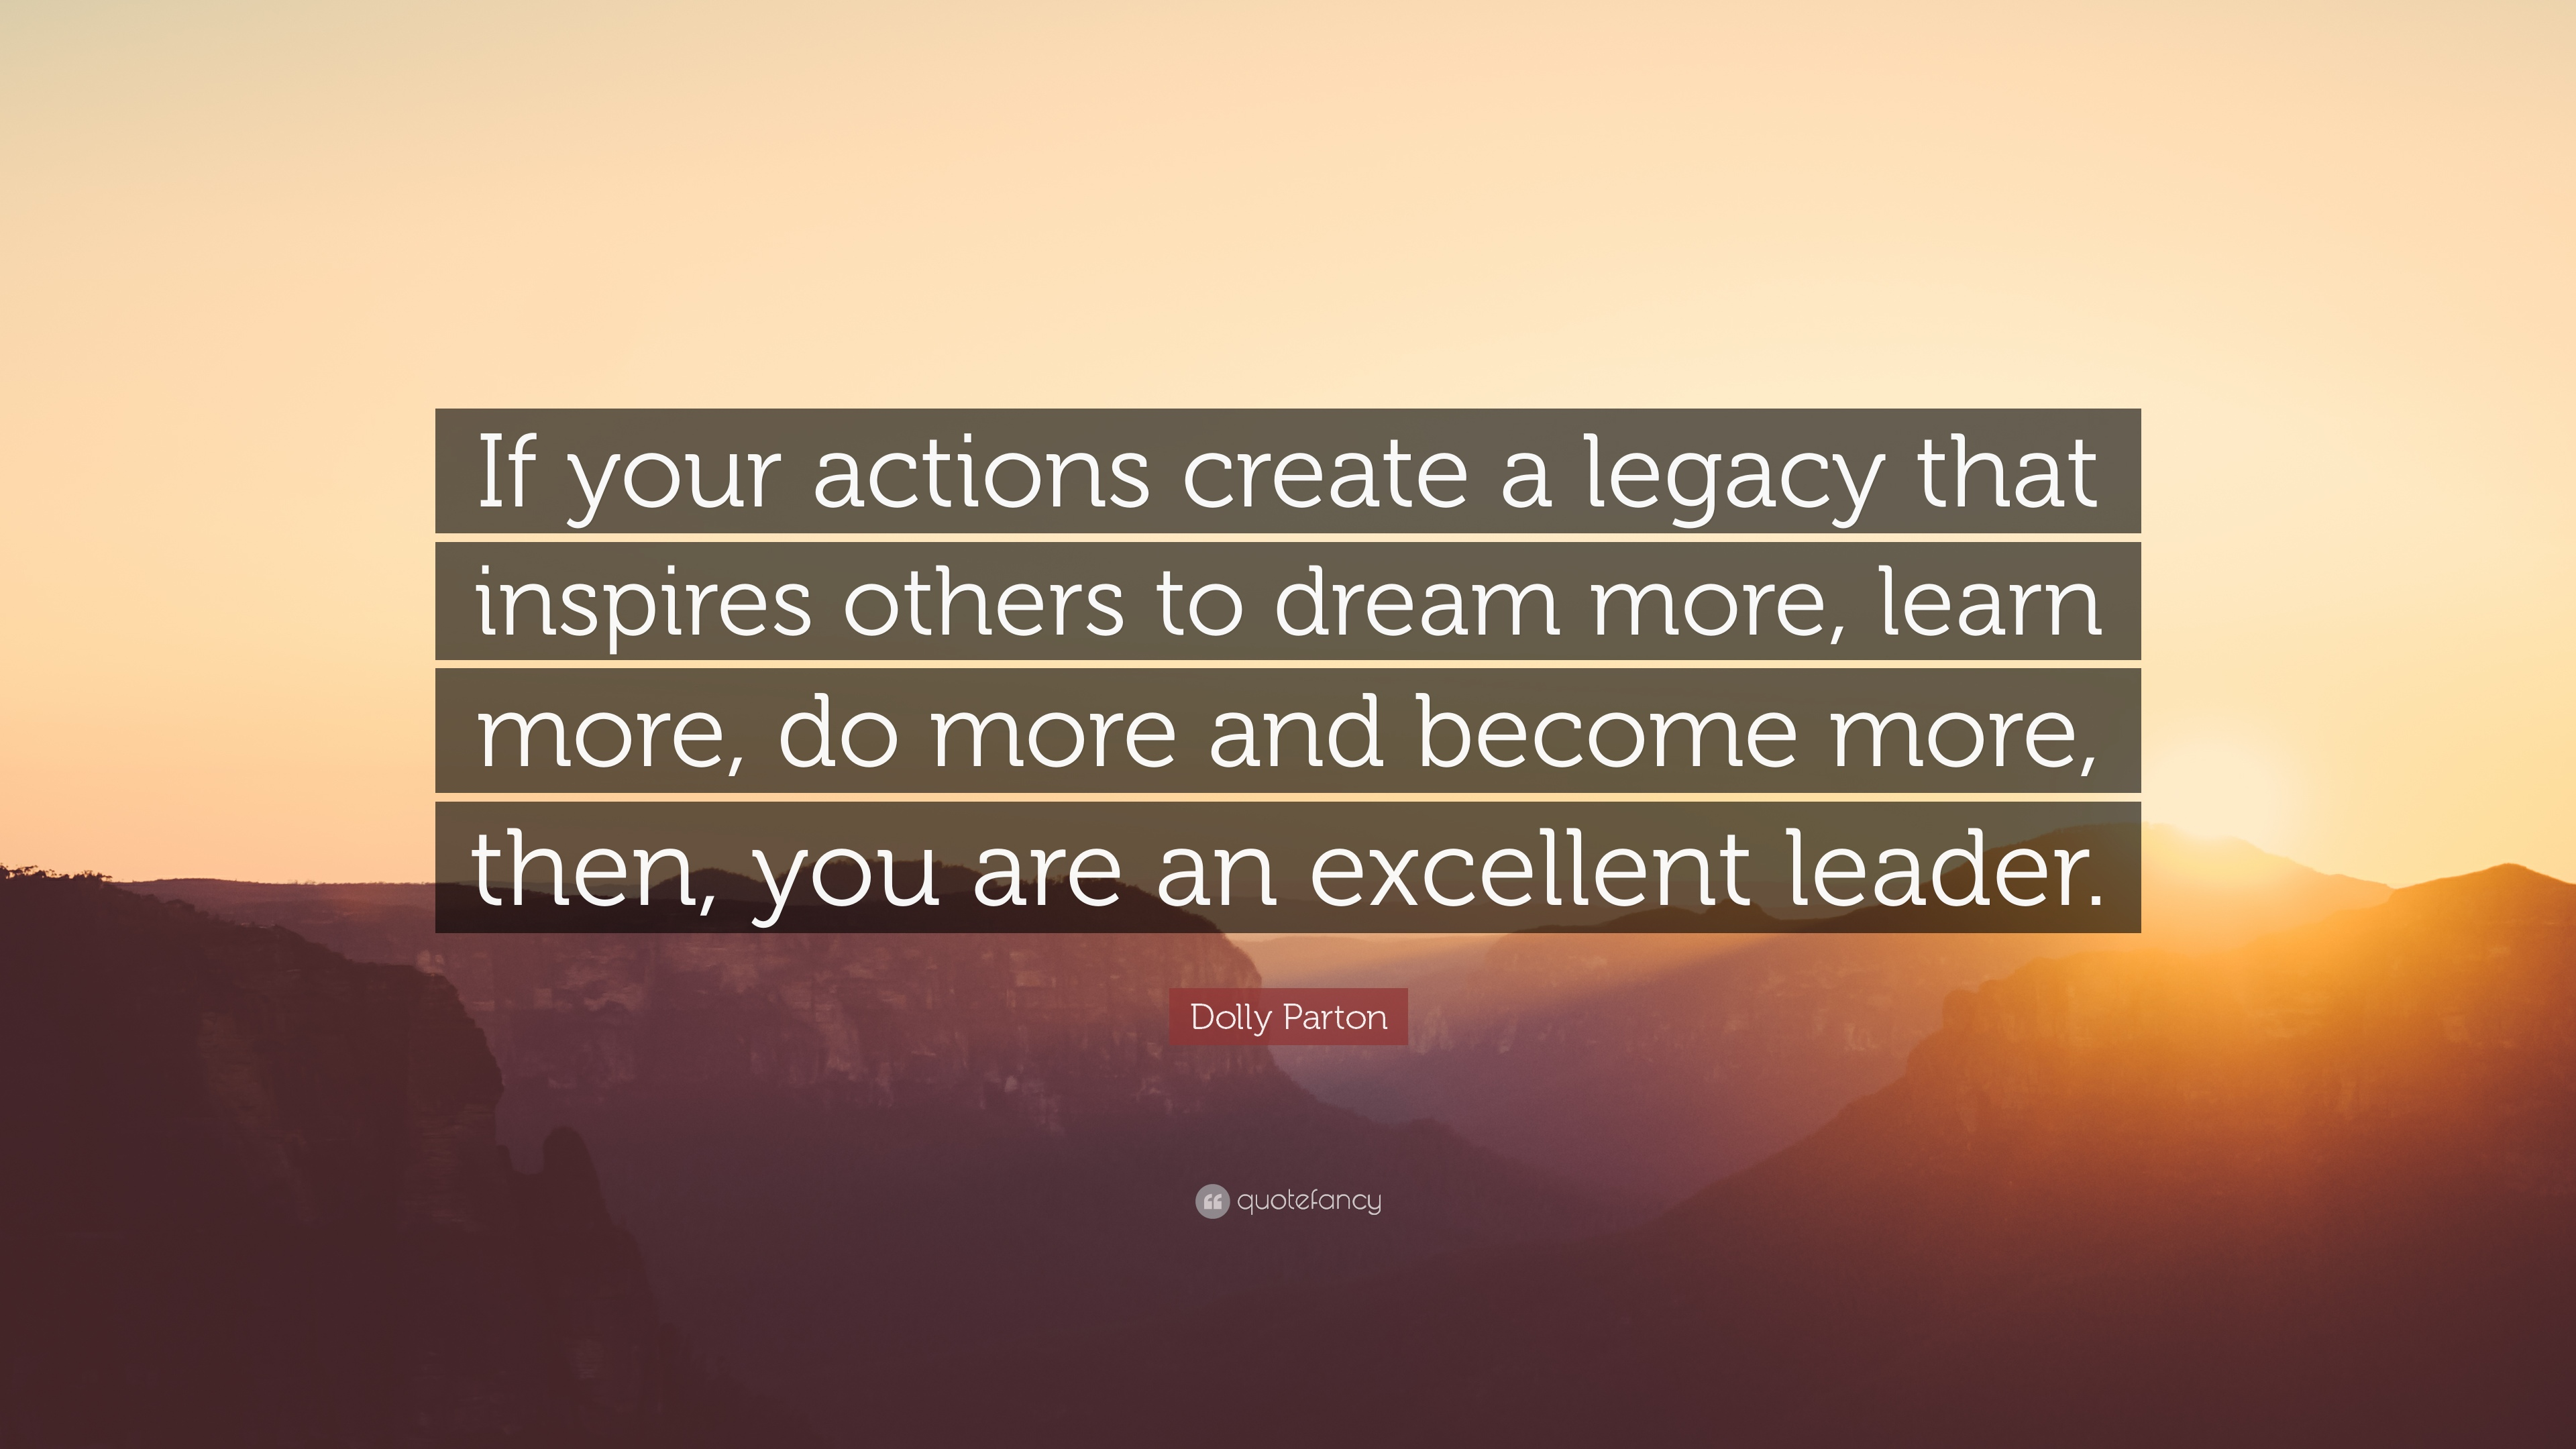 Inspirational Quote Wallpaper For Computer Dolly Parton Quote If Your Actions Create A Legacy That